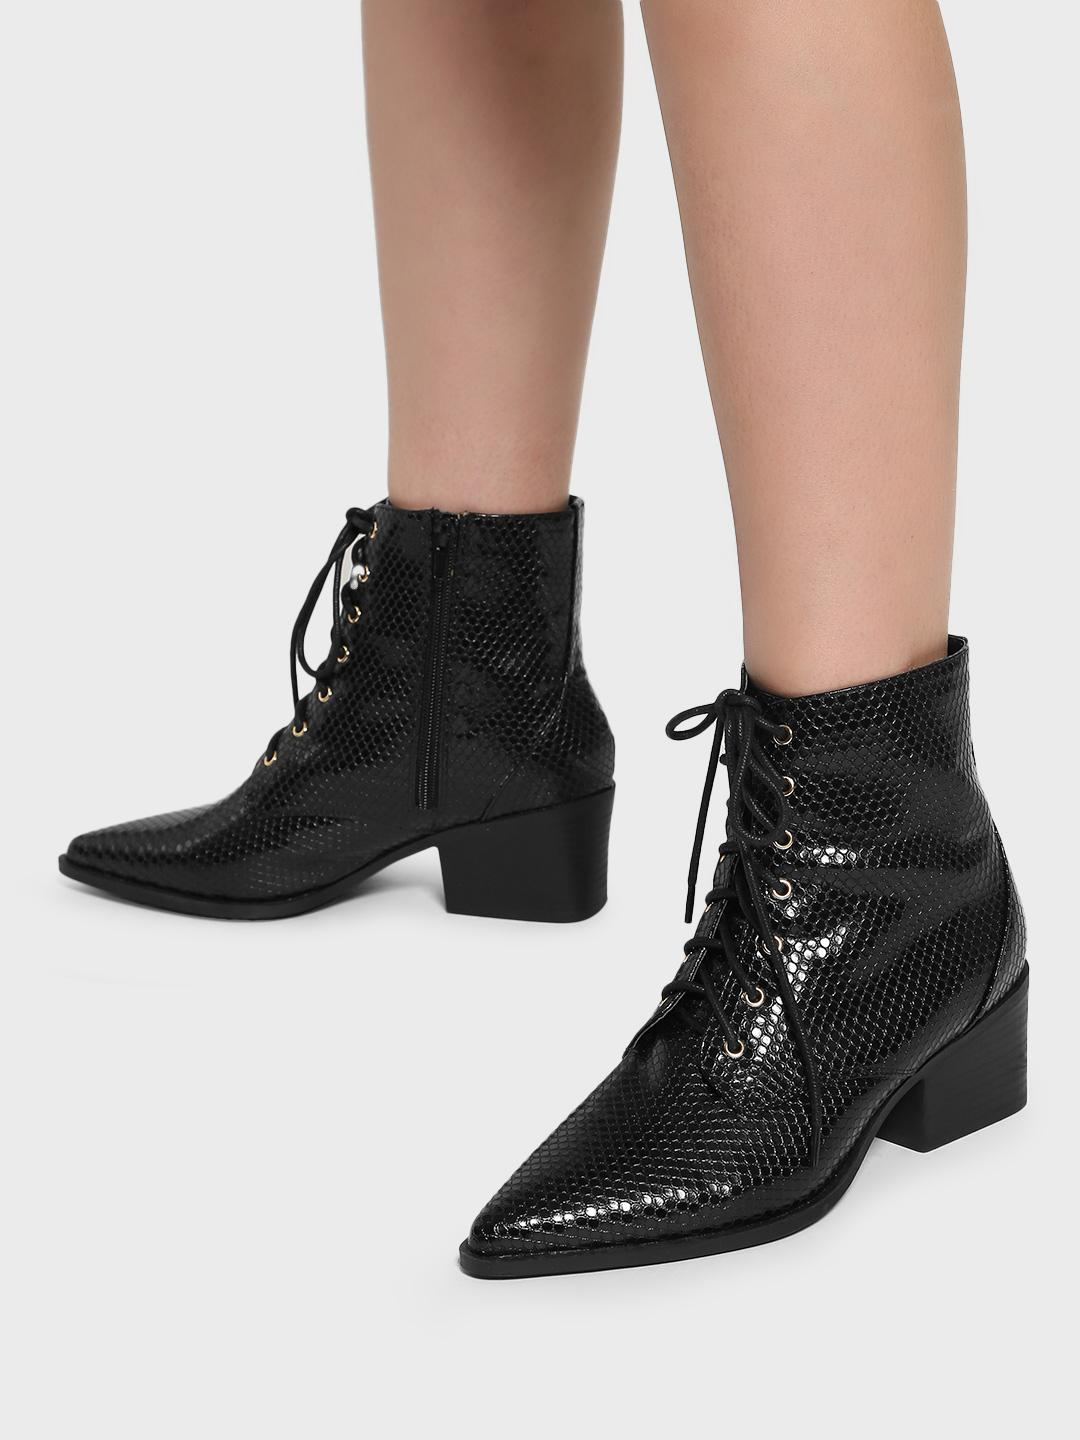 Intoto Black Textured Ankle Length Boots 1